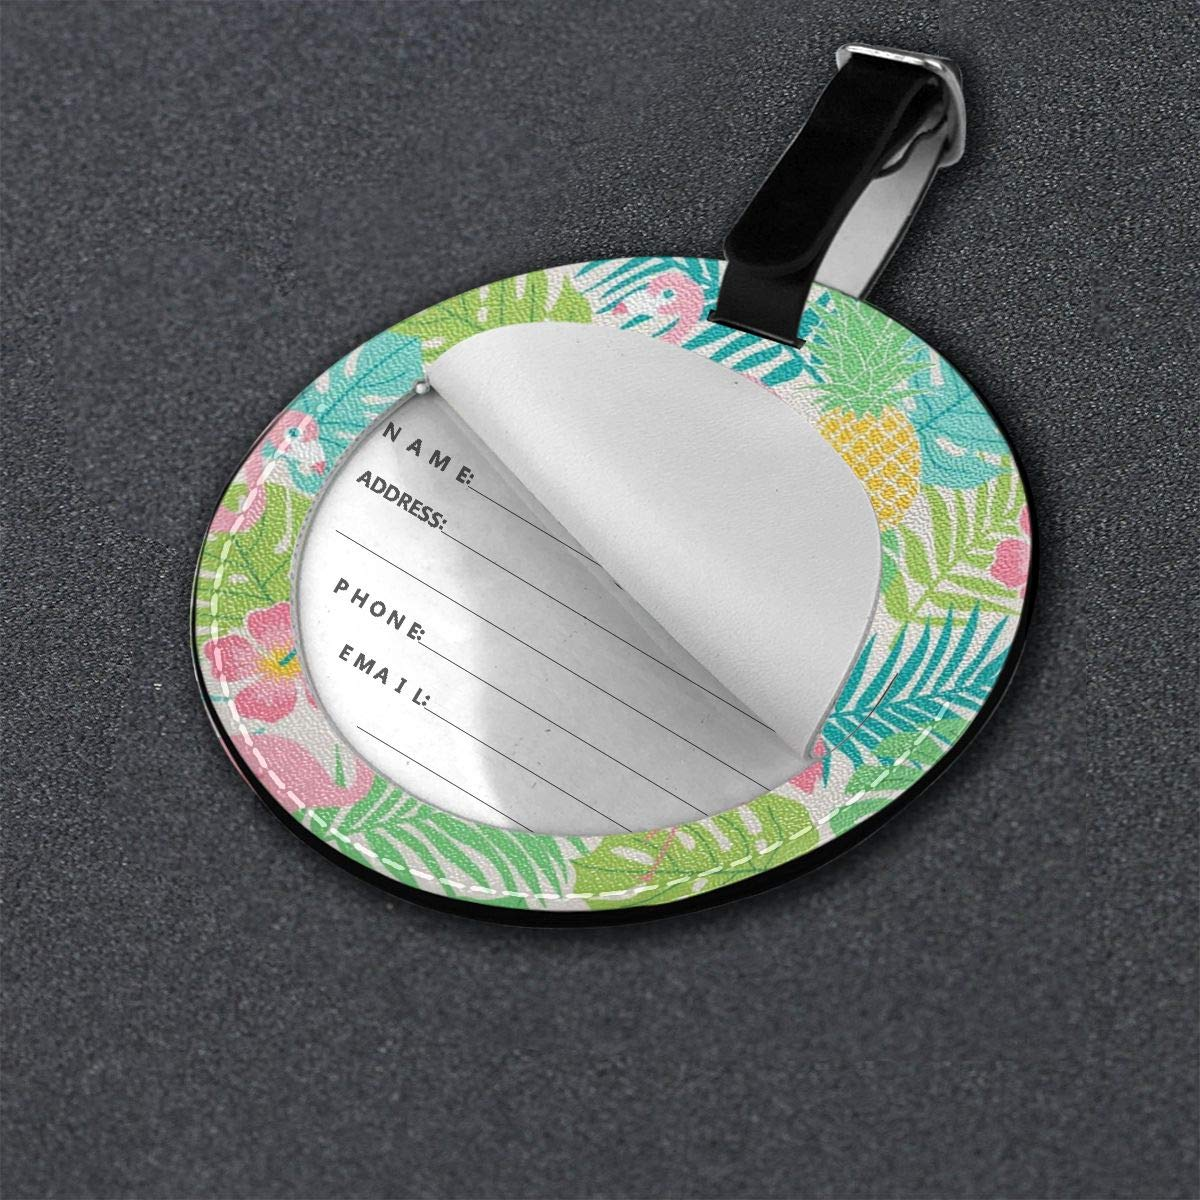 Luggage Tags Tropical Cute Flamingo Bird Travel Accessories Baggage Name Tags